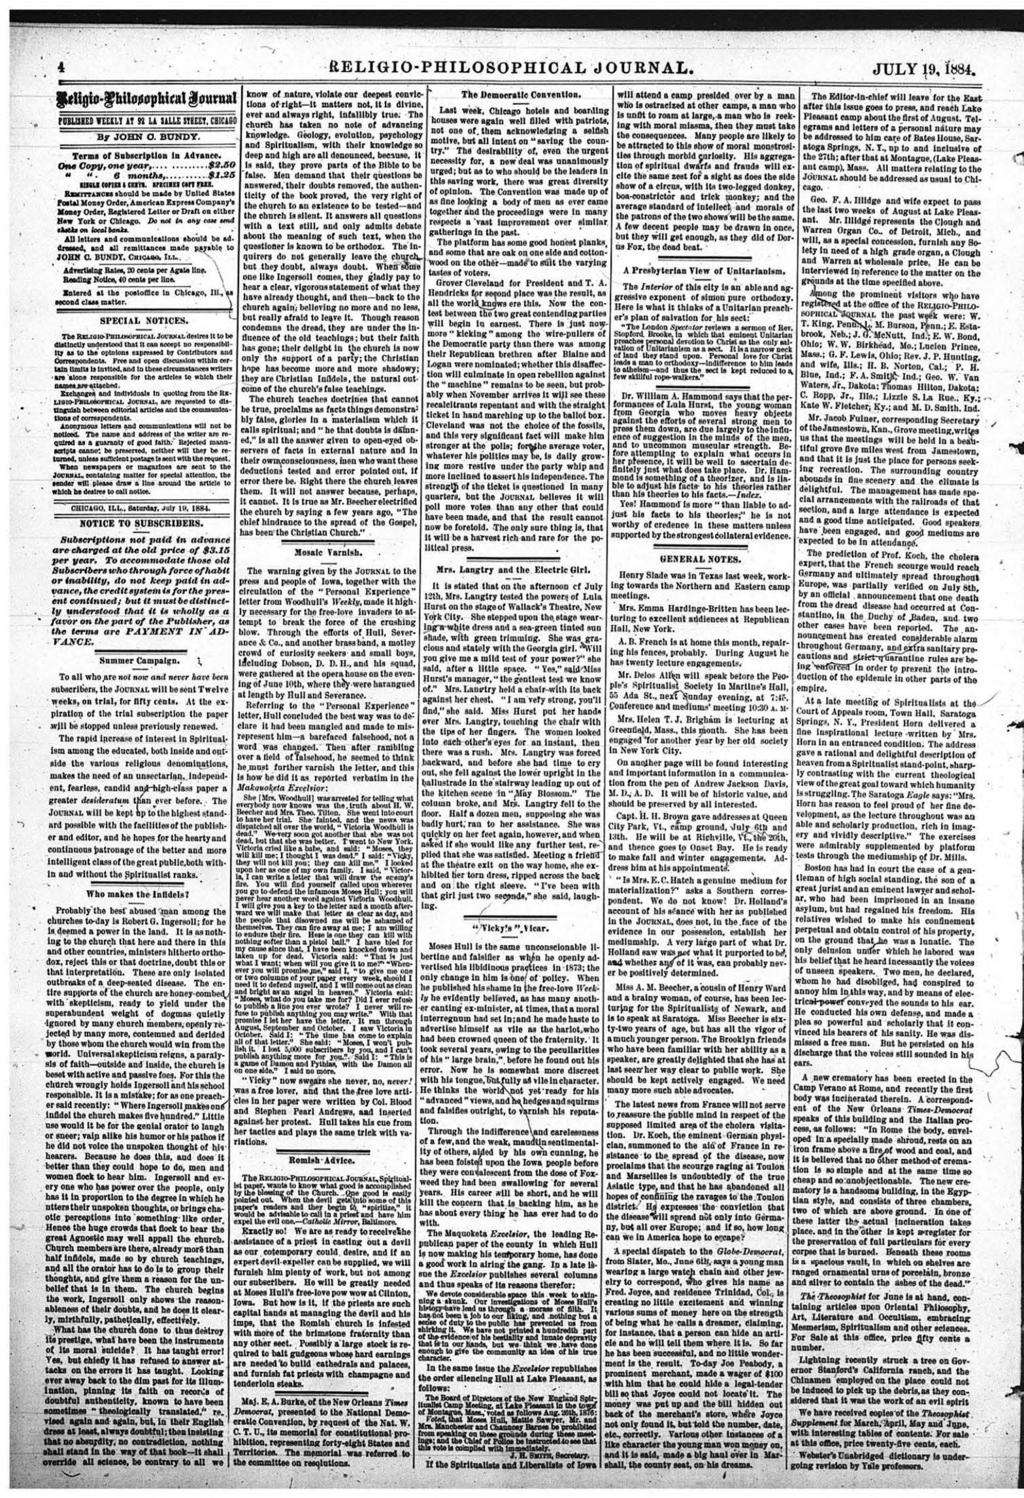 RELIGIO-PHILOSOPHICAL JOURNAL. JULY 19, 1884. fmigto-g bilouop hind goutna f Dilli BEDIEEILÏ IT M Li ULLE STBELT, CB1CA&0 By JOHN O, BUNDY. Terms of Subscription In Advance. OtM C opy,o n e y e a r,,.